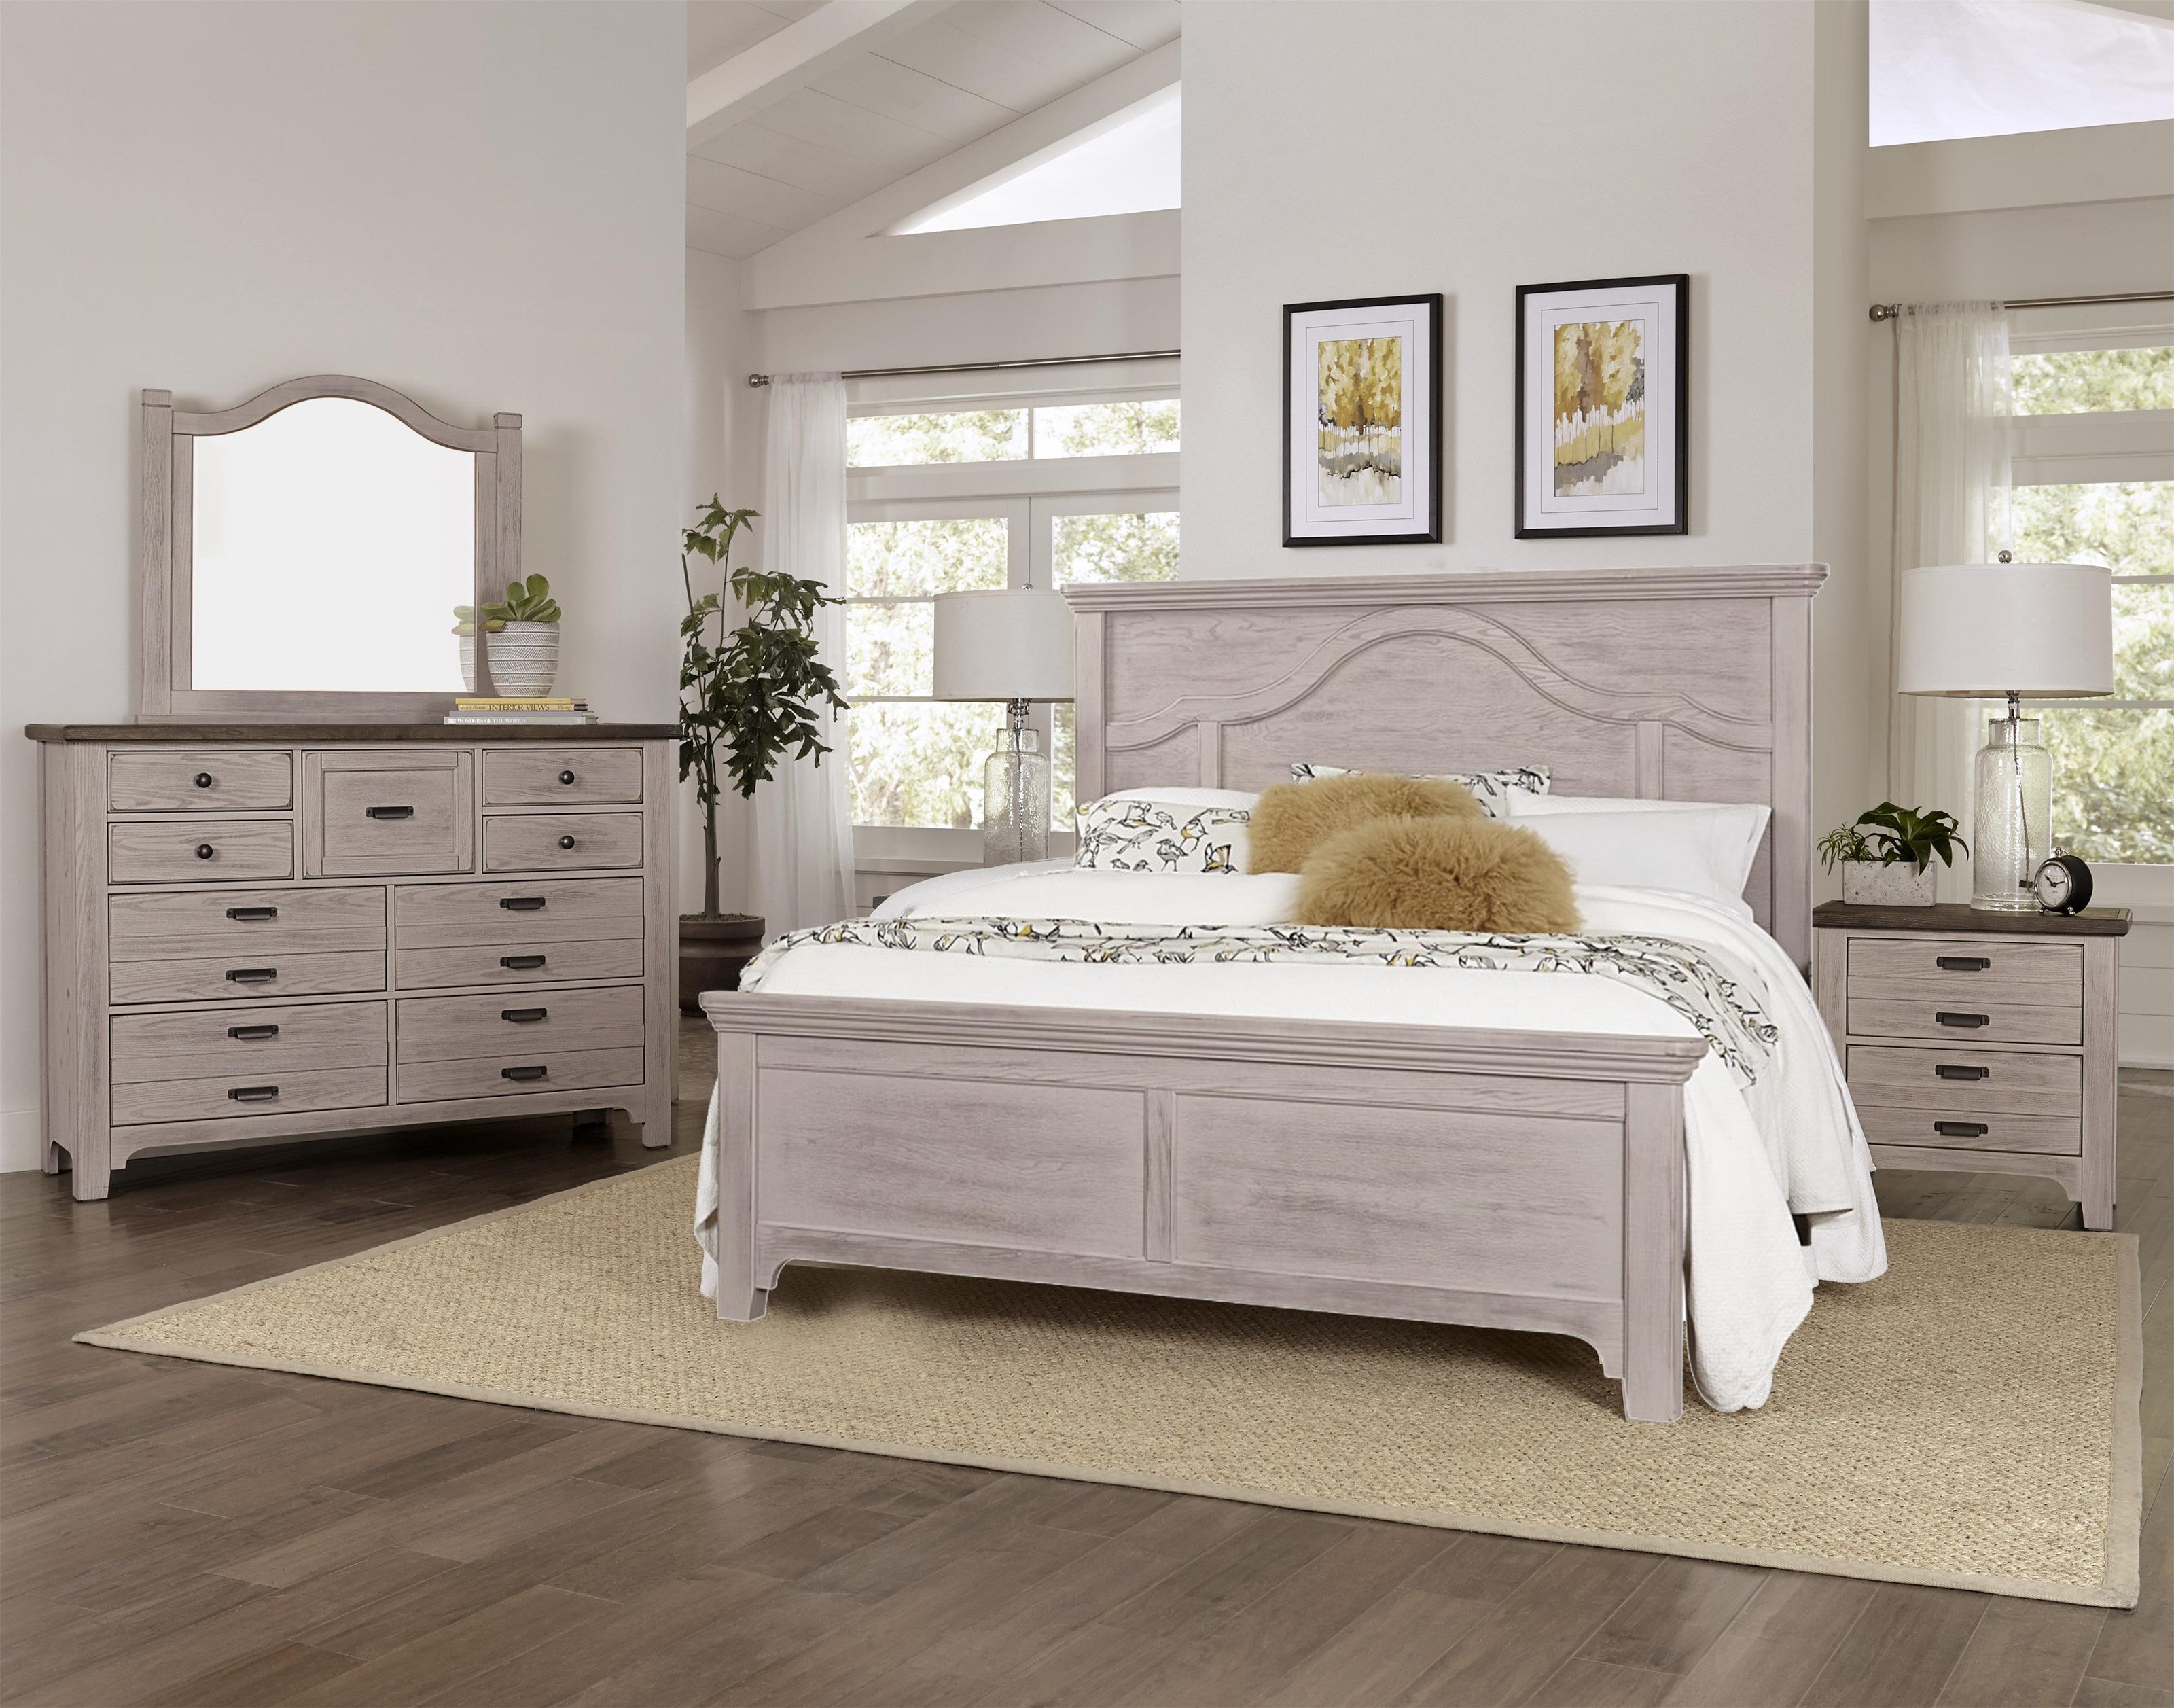 Bungalow 4-Piece King Bedroom by Laurel Mercantile Co. at Ruby Gordon Home